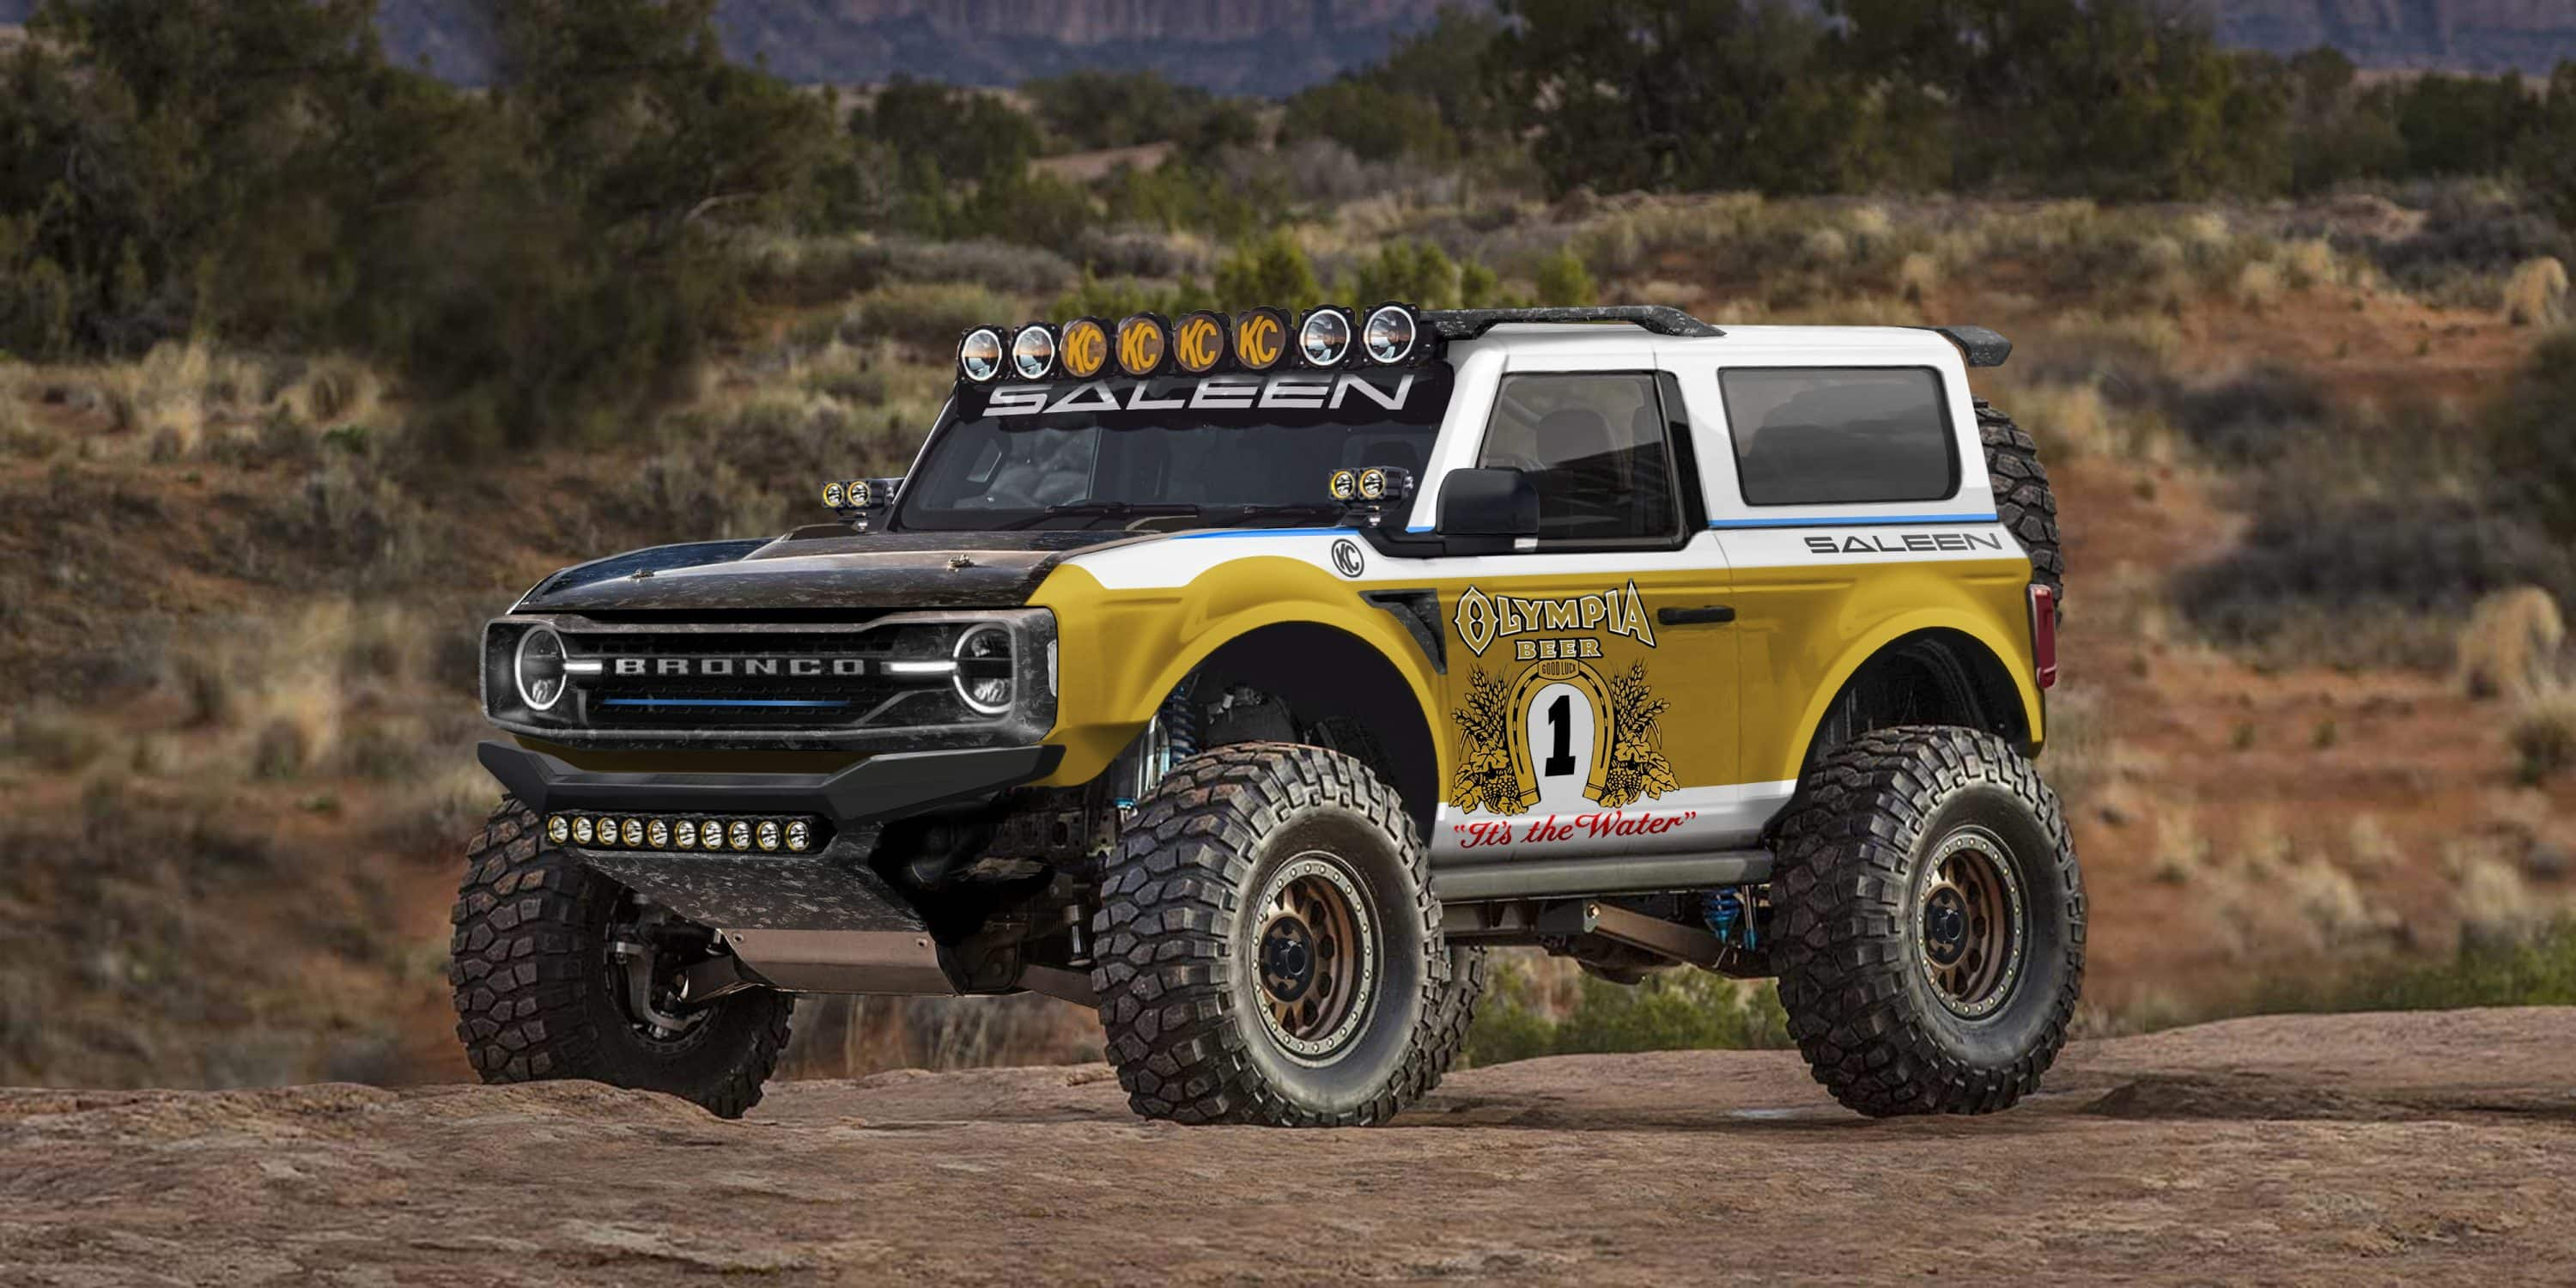 The resurrected Ford Bronco only debuted a couple of days ago (watch the video if you missed it), but tuners are already rushing in to offer aftermarket upgrades for it. Saleen is the first such company; let's see what it plans to do with the off-roader.